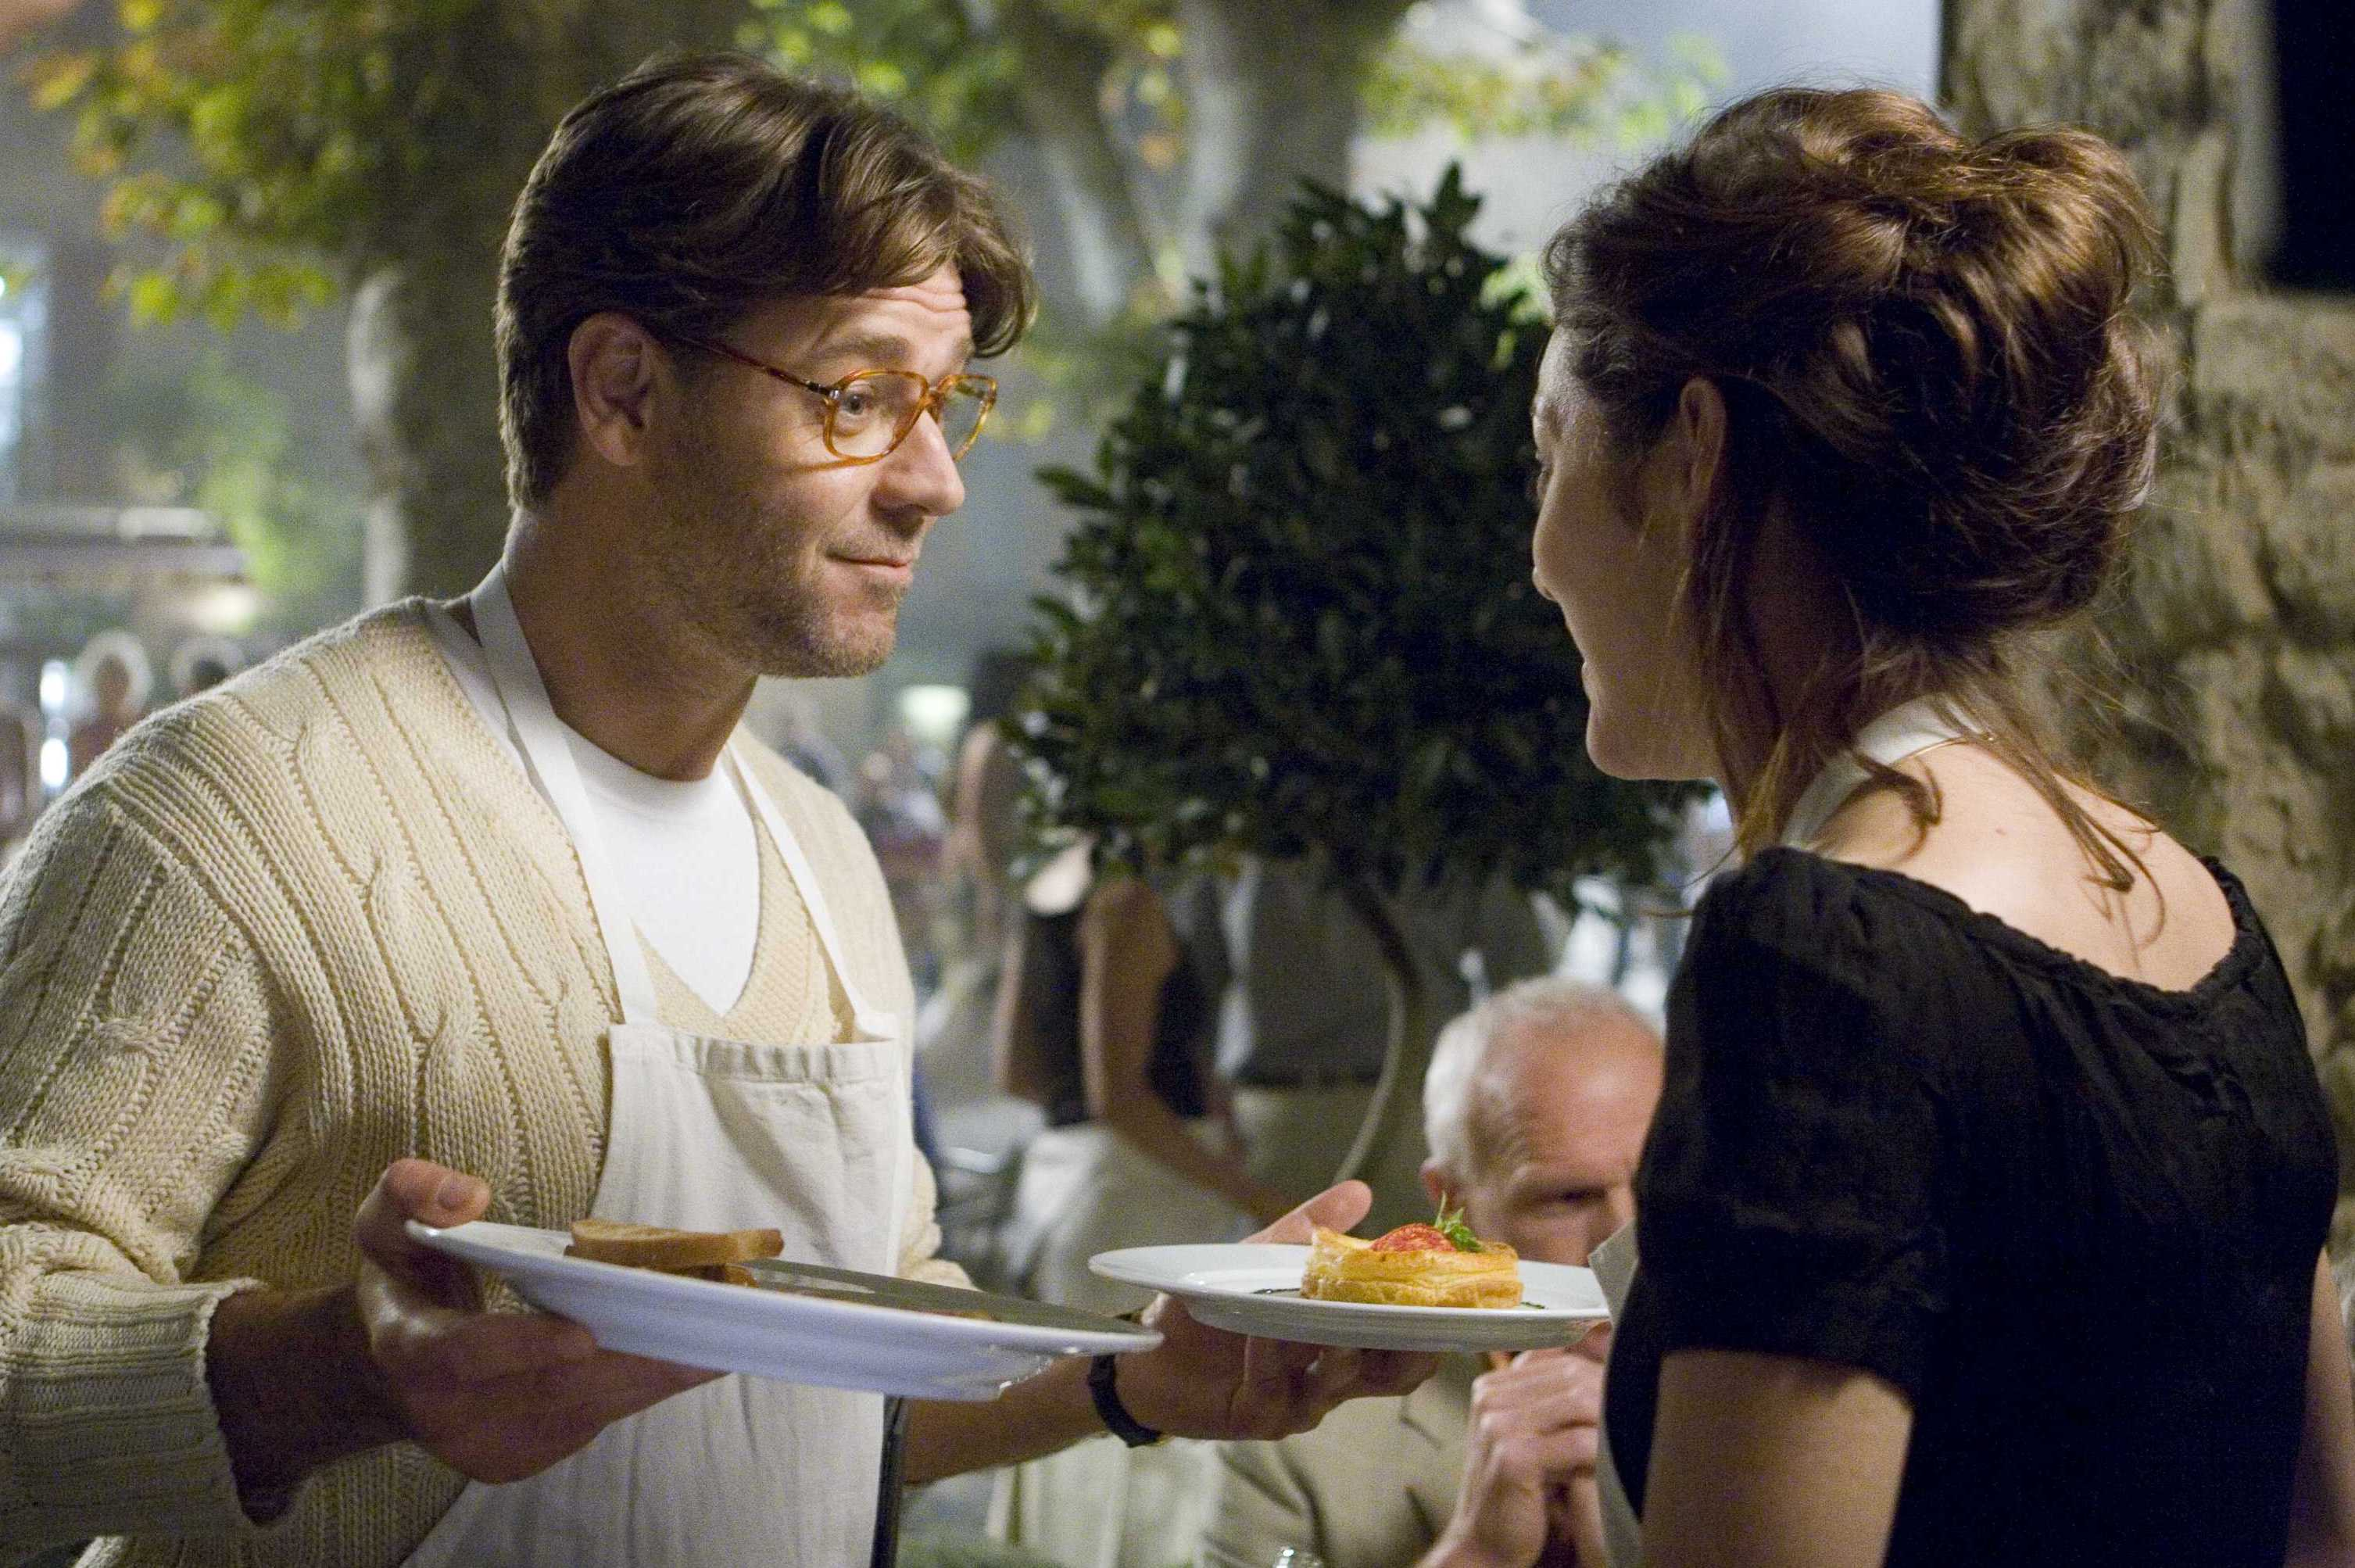 G-193	Hoping to impress Fanny (Marion Cotillard), Max (Russell Crowe) helps wait tables at her café in A GOOD YEAR.